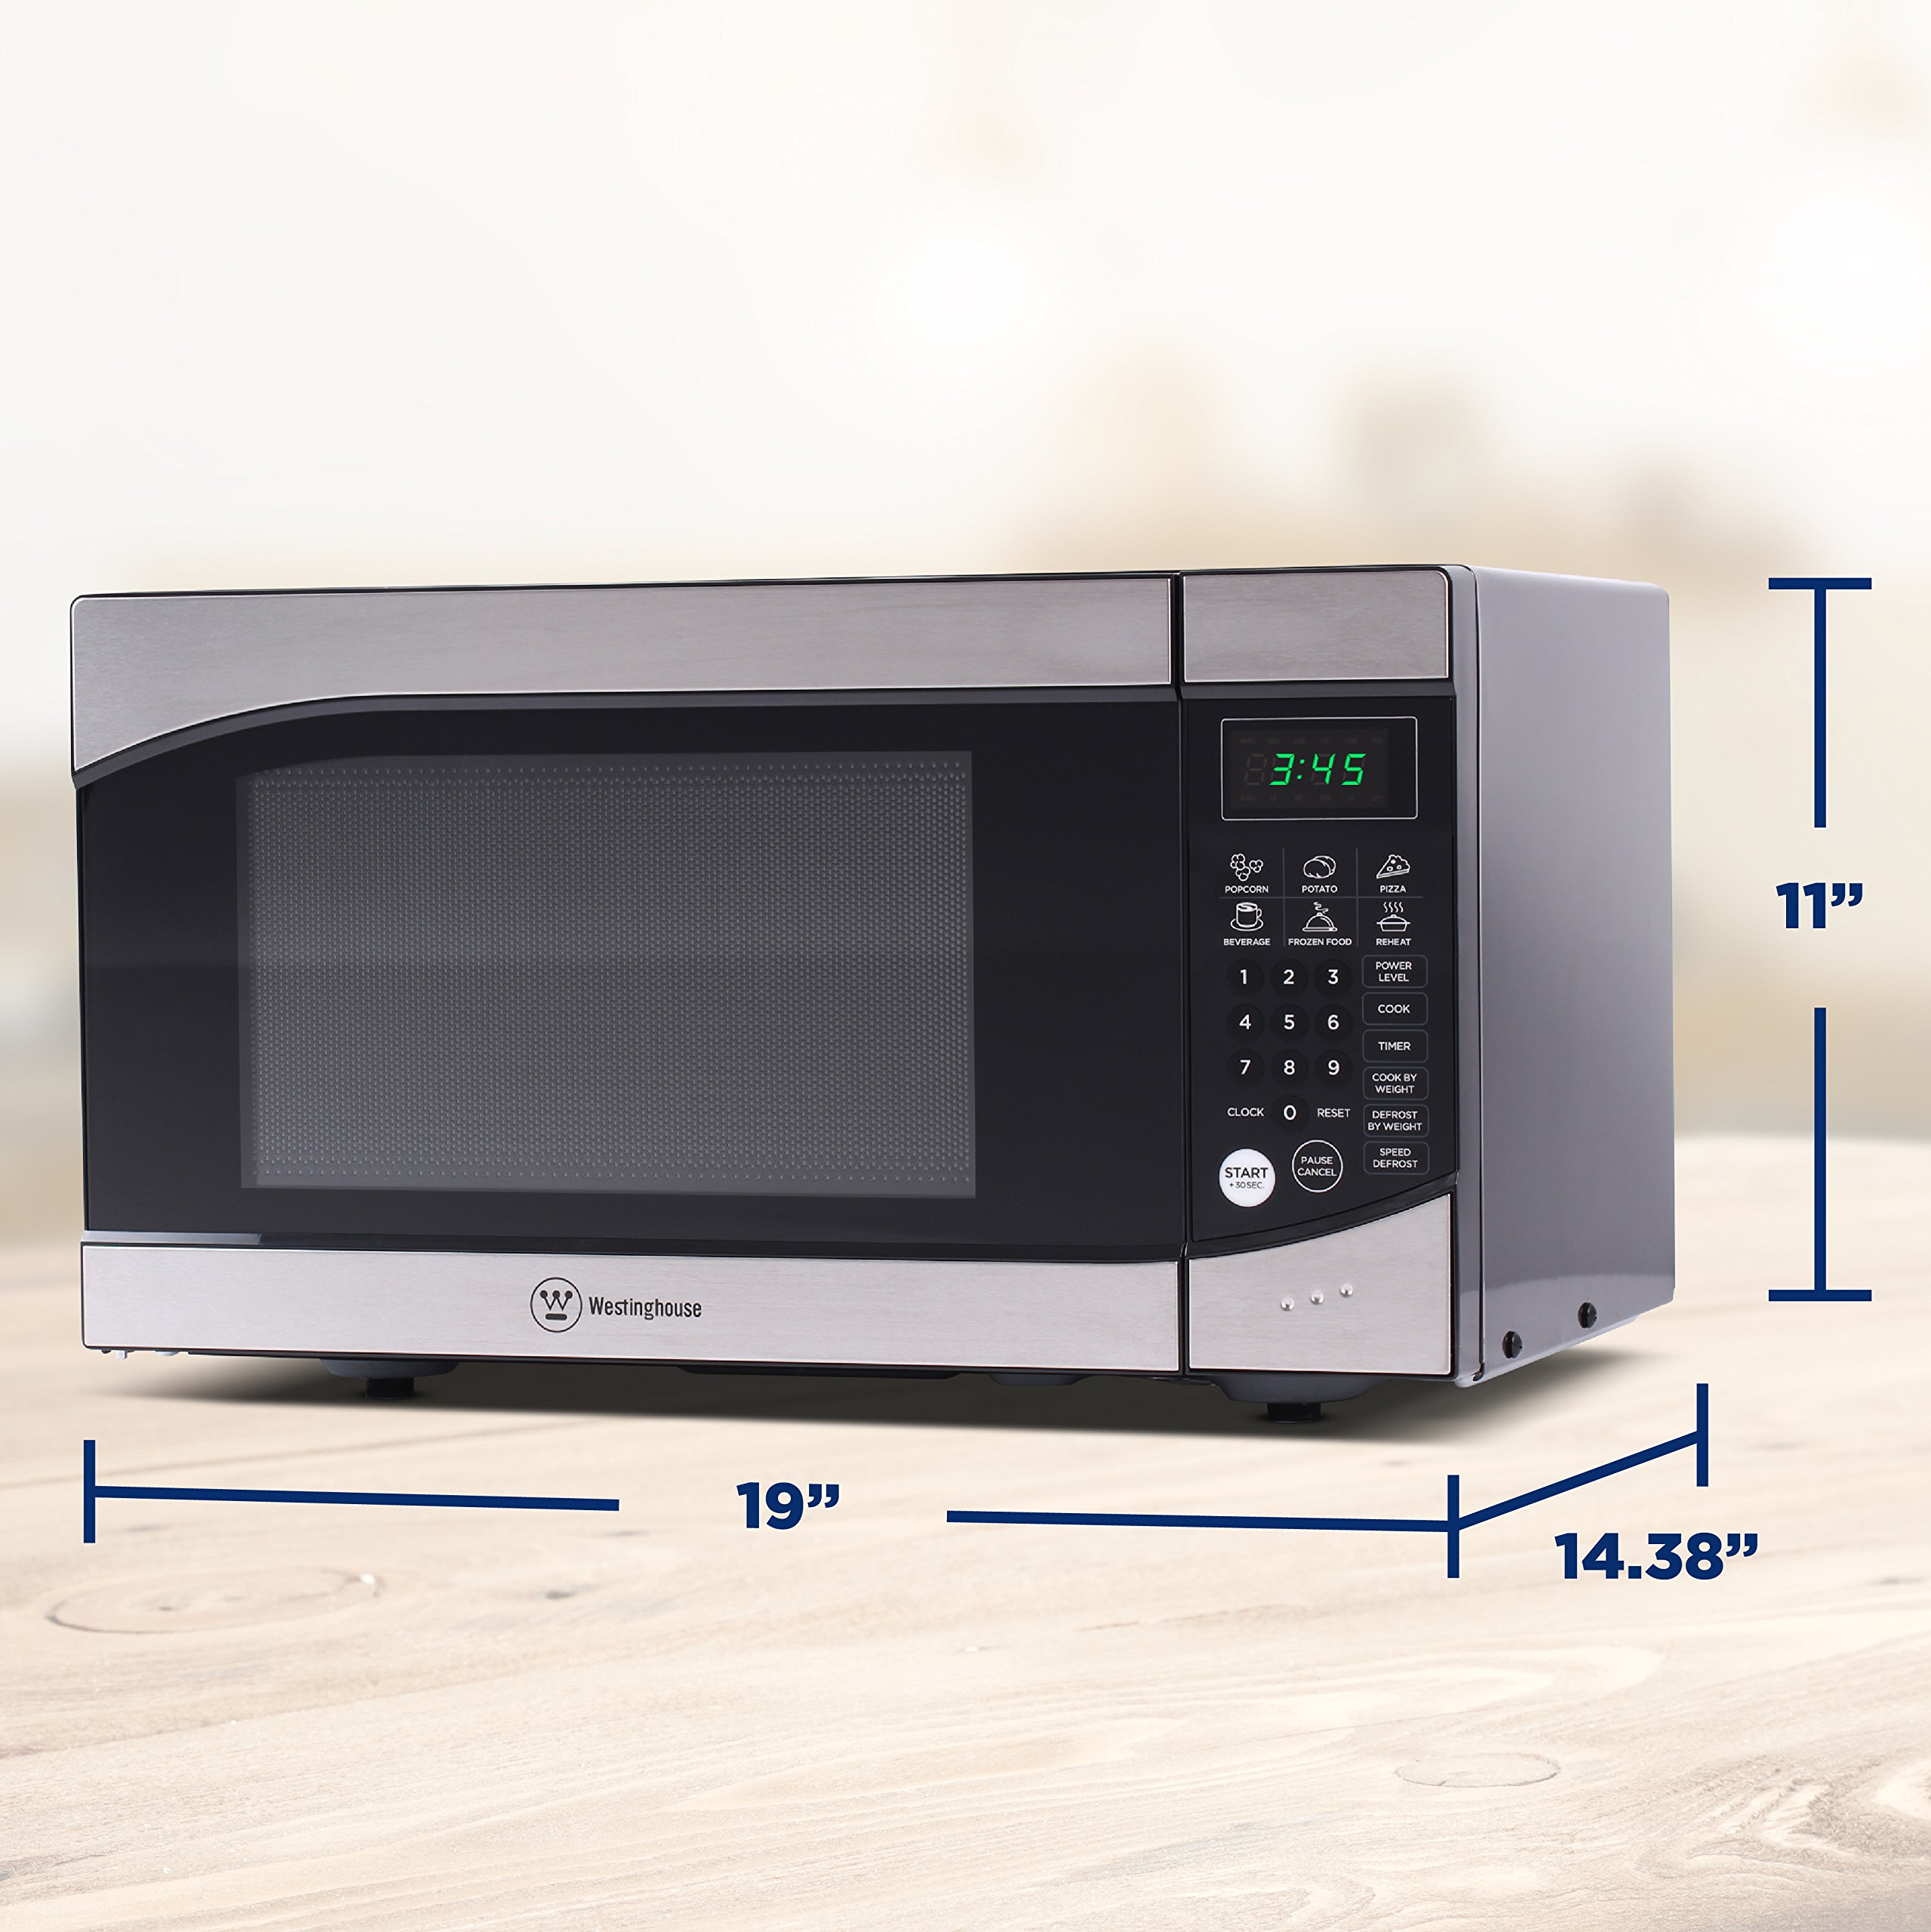 Westinghouse, WM009, Countertop Microwave Oven, 900 Watt, 0.9 Cubic Feet, Stainless Steel Front, Black Cabinet, Small by Westinghouse (Image #6)